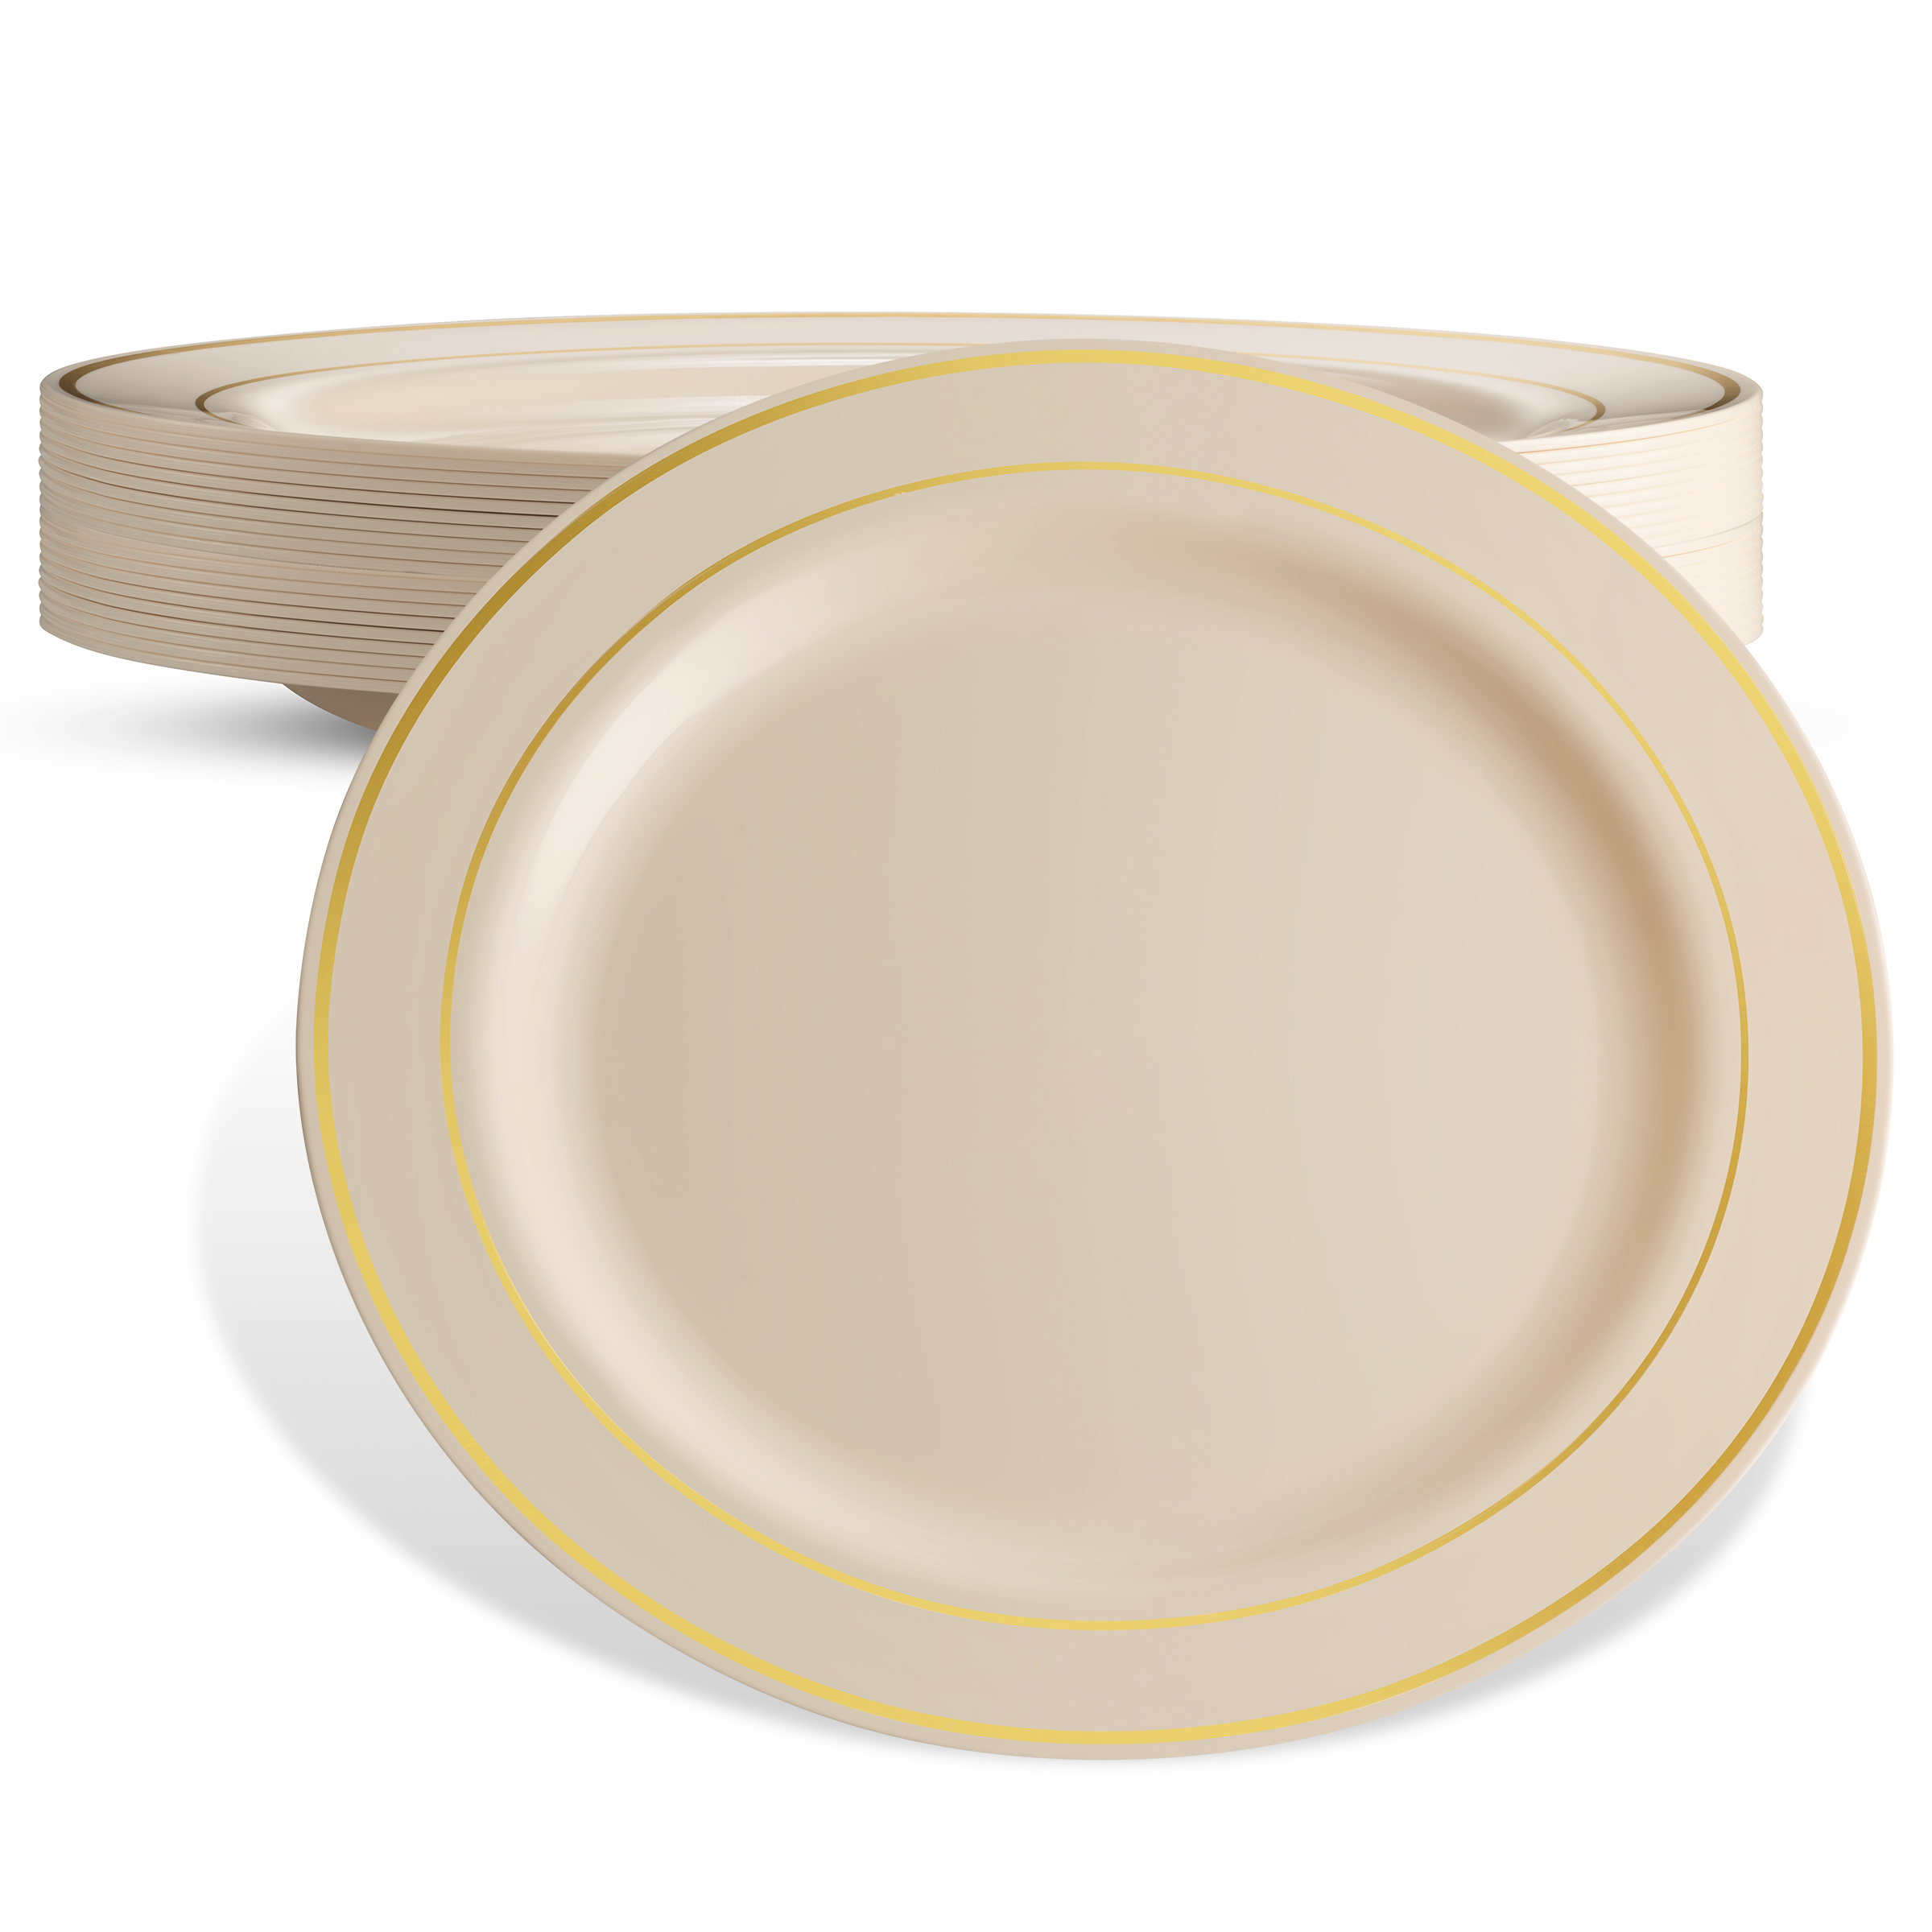 DELUXE PLASTIC PARTY DISPOSABLE PLATES | 10.25 Inch Hard Wedding Dinner Plates | Ivory with Gold  sc 1 st  Walmart & DELUXE PLASTIC PARTY DISPOSABLE PLATES | 10.25 Inch Hard Wedding ...